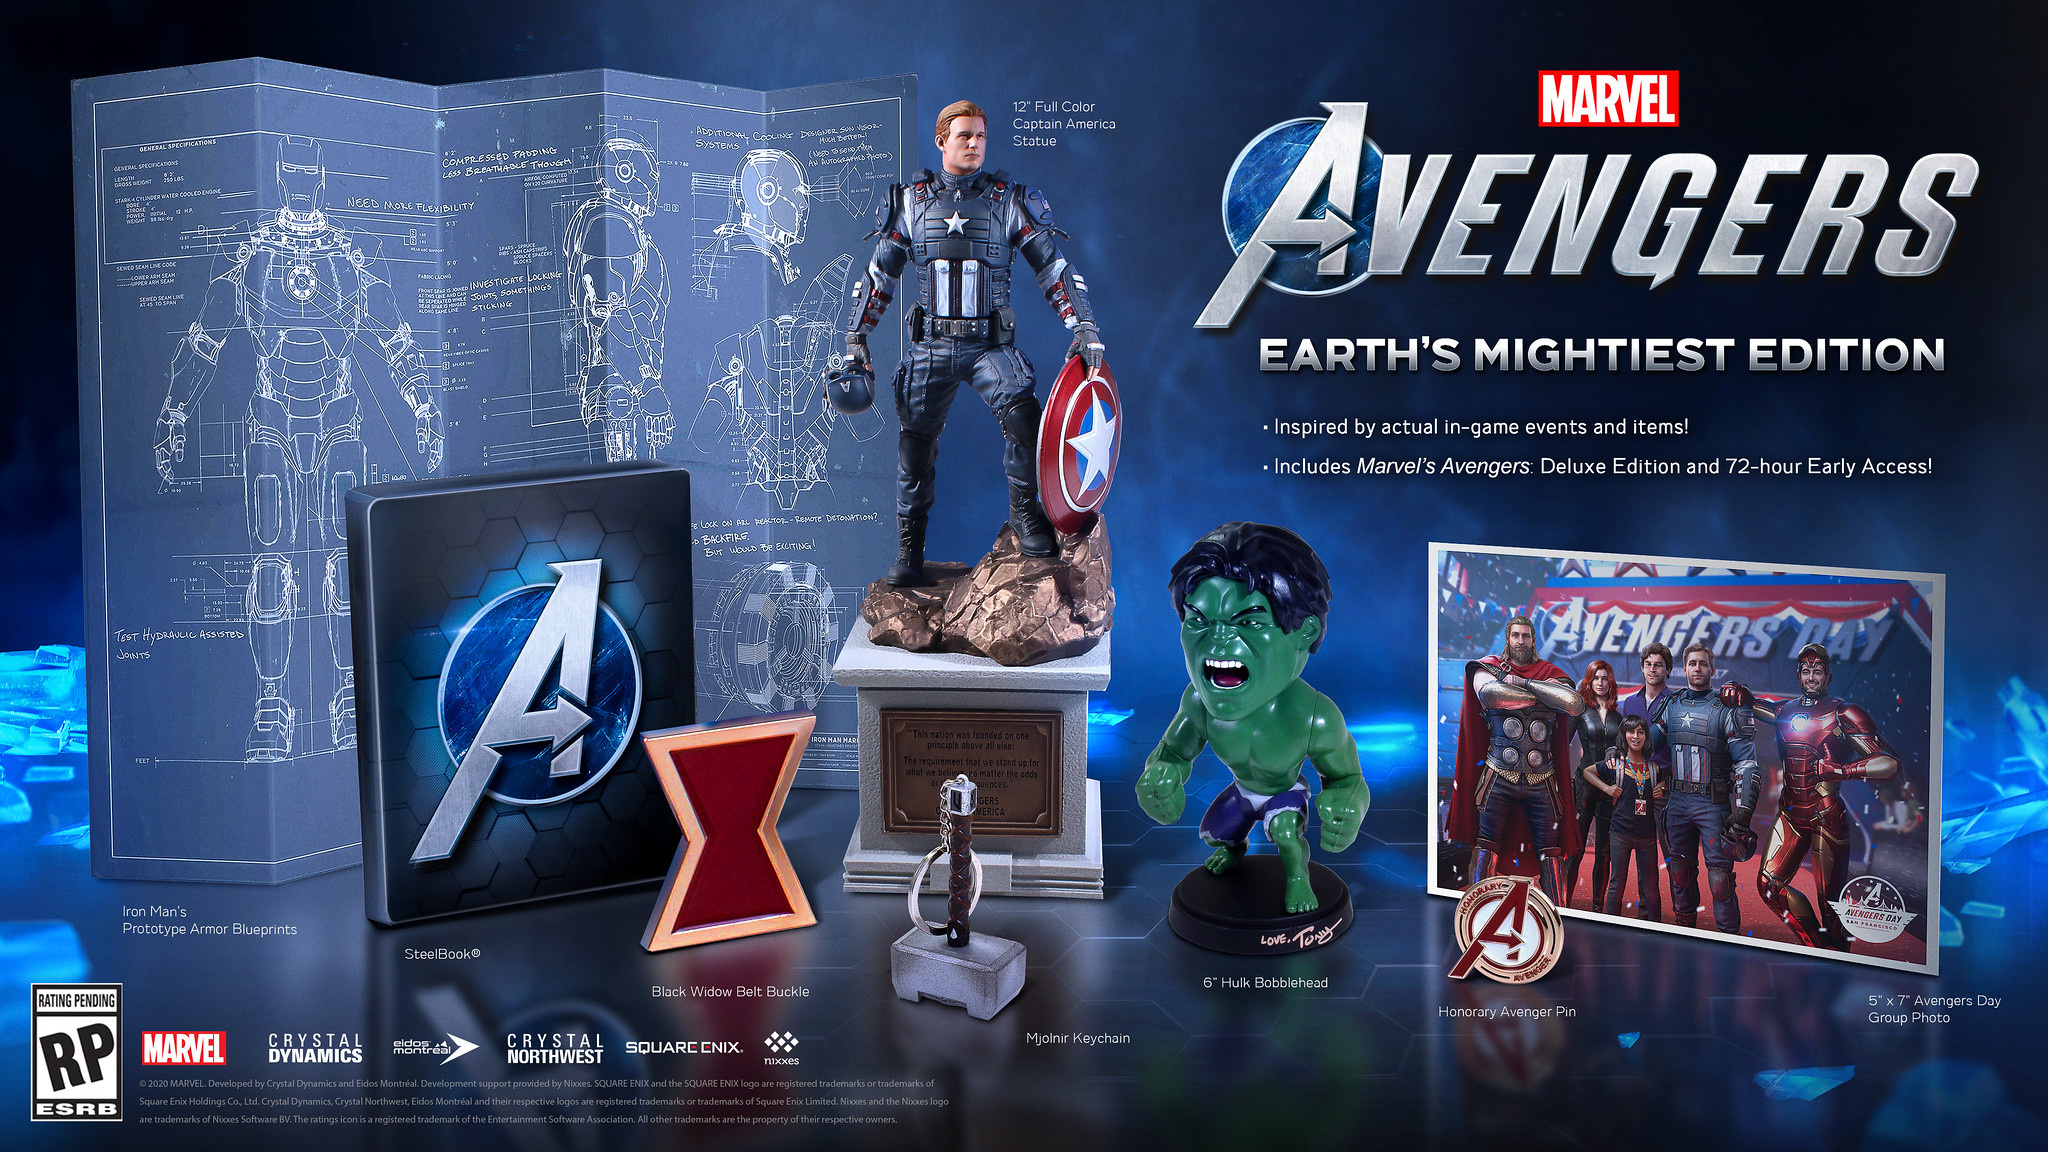 Marvels Avengers Preorders Open for Earths Mightiest, Deluxe Editions